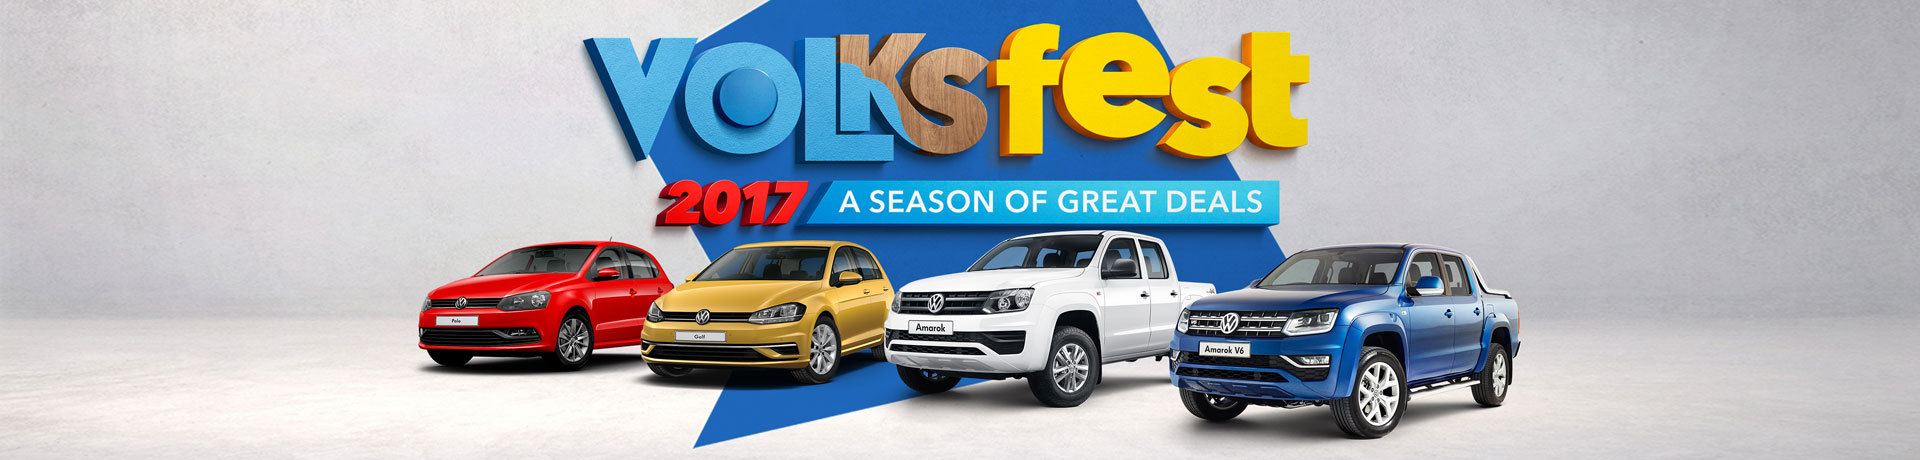 Volkswagen - National Offer - Volksfest; 2017 A Season of Great Deals